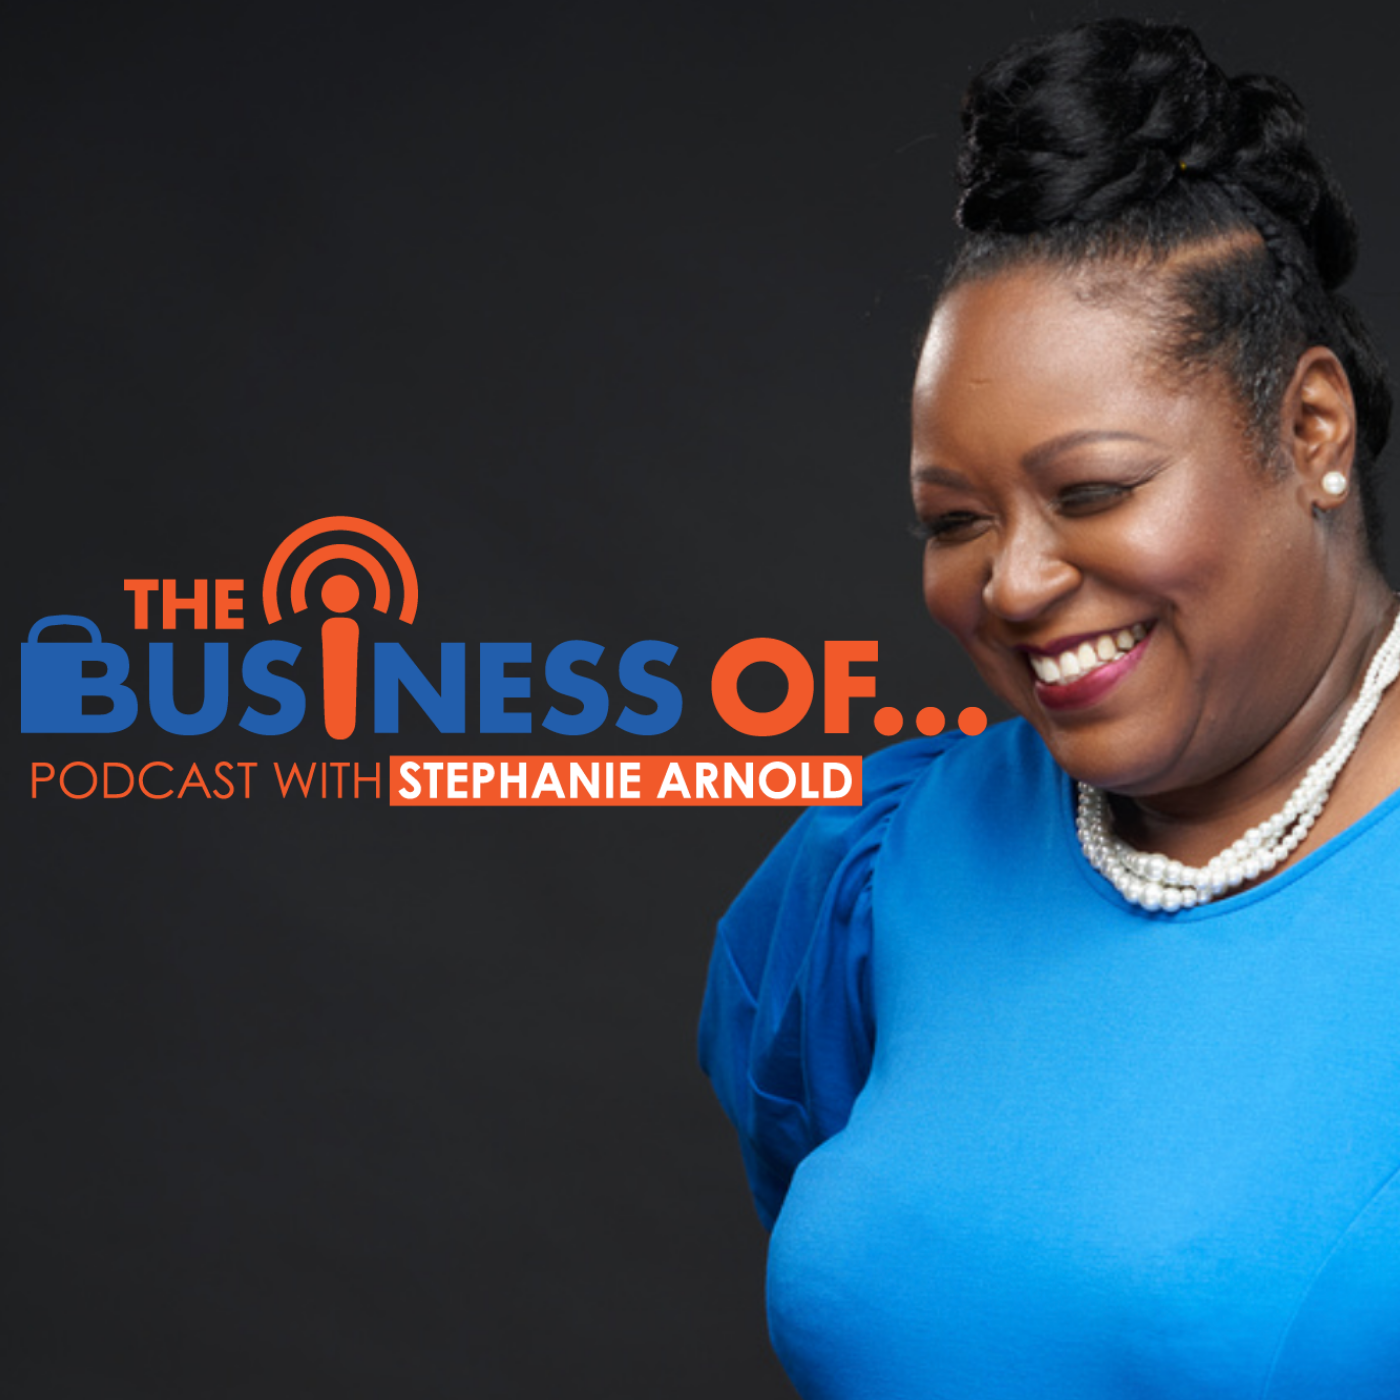 The Business Of...Podcast with Stephanie Arnold show art